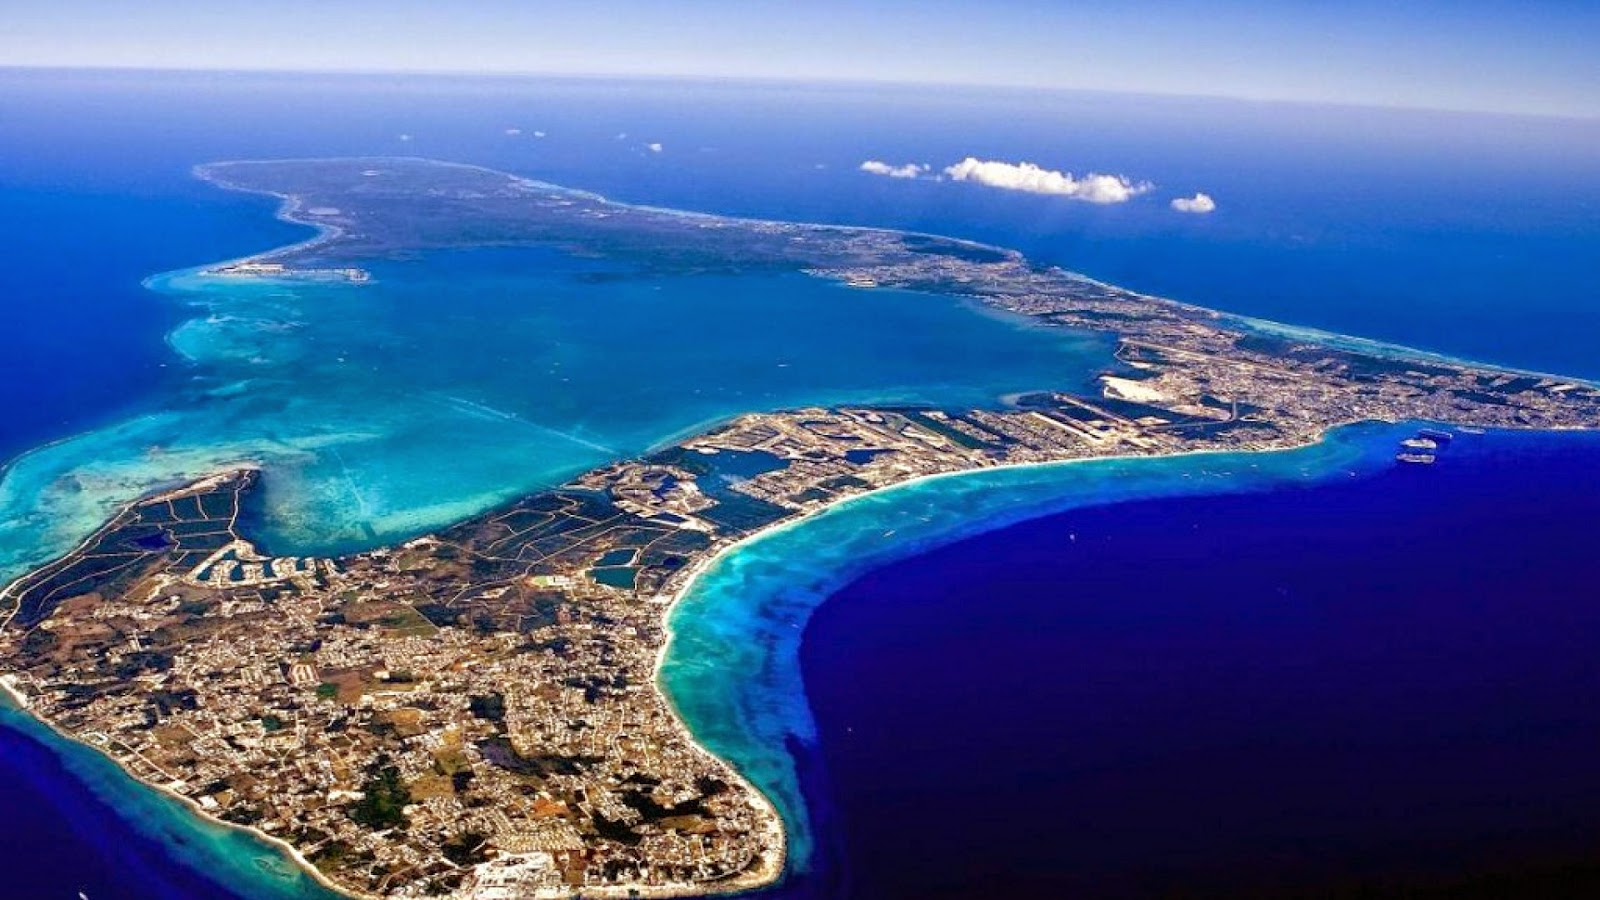 Cayman Islands: Public Asked For Views On Sunday Trading